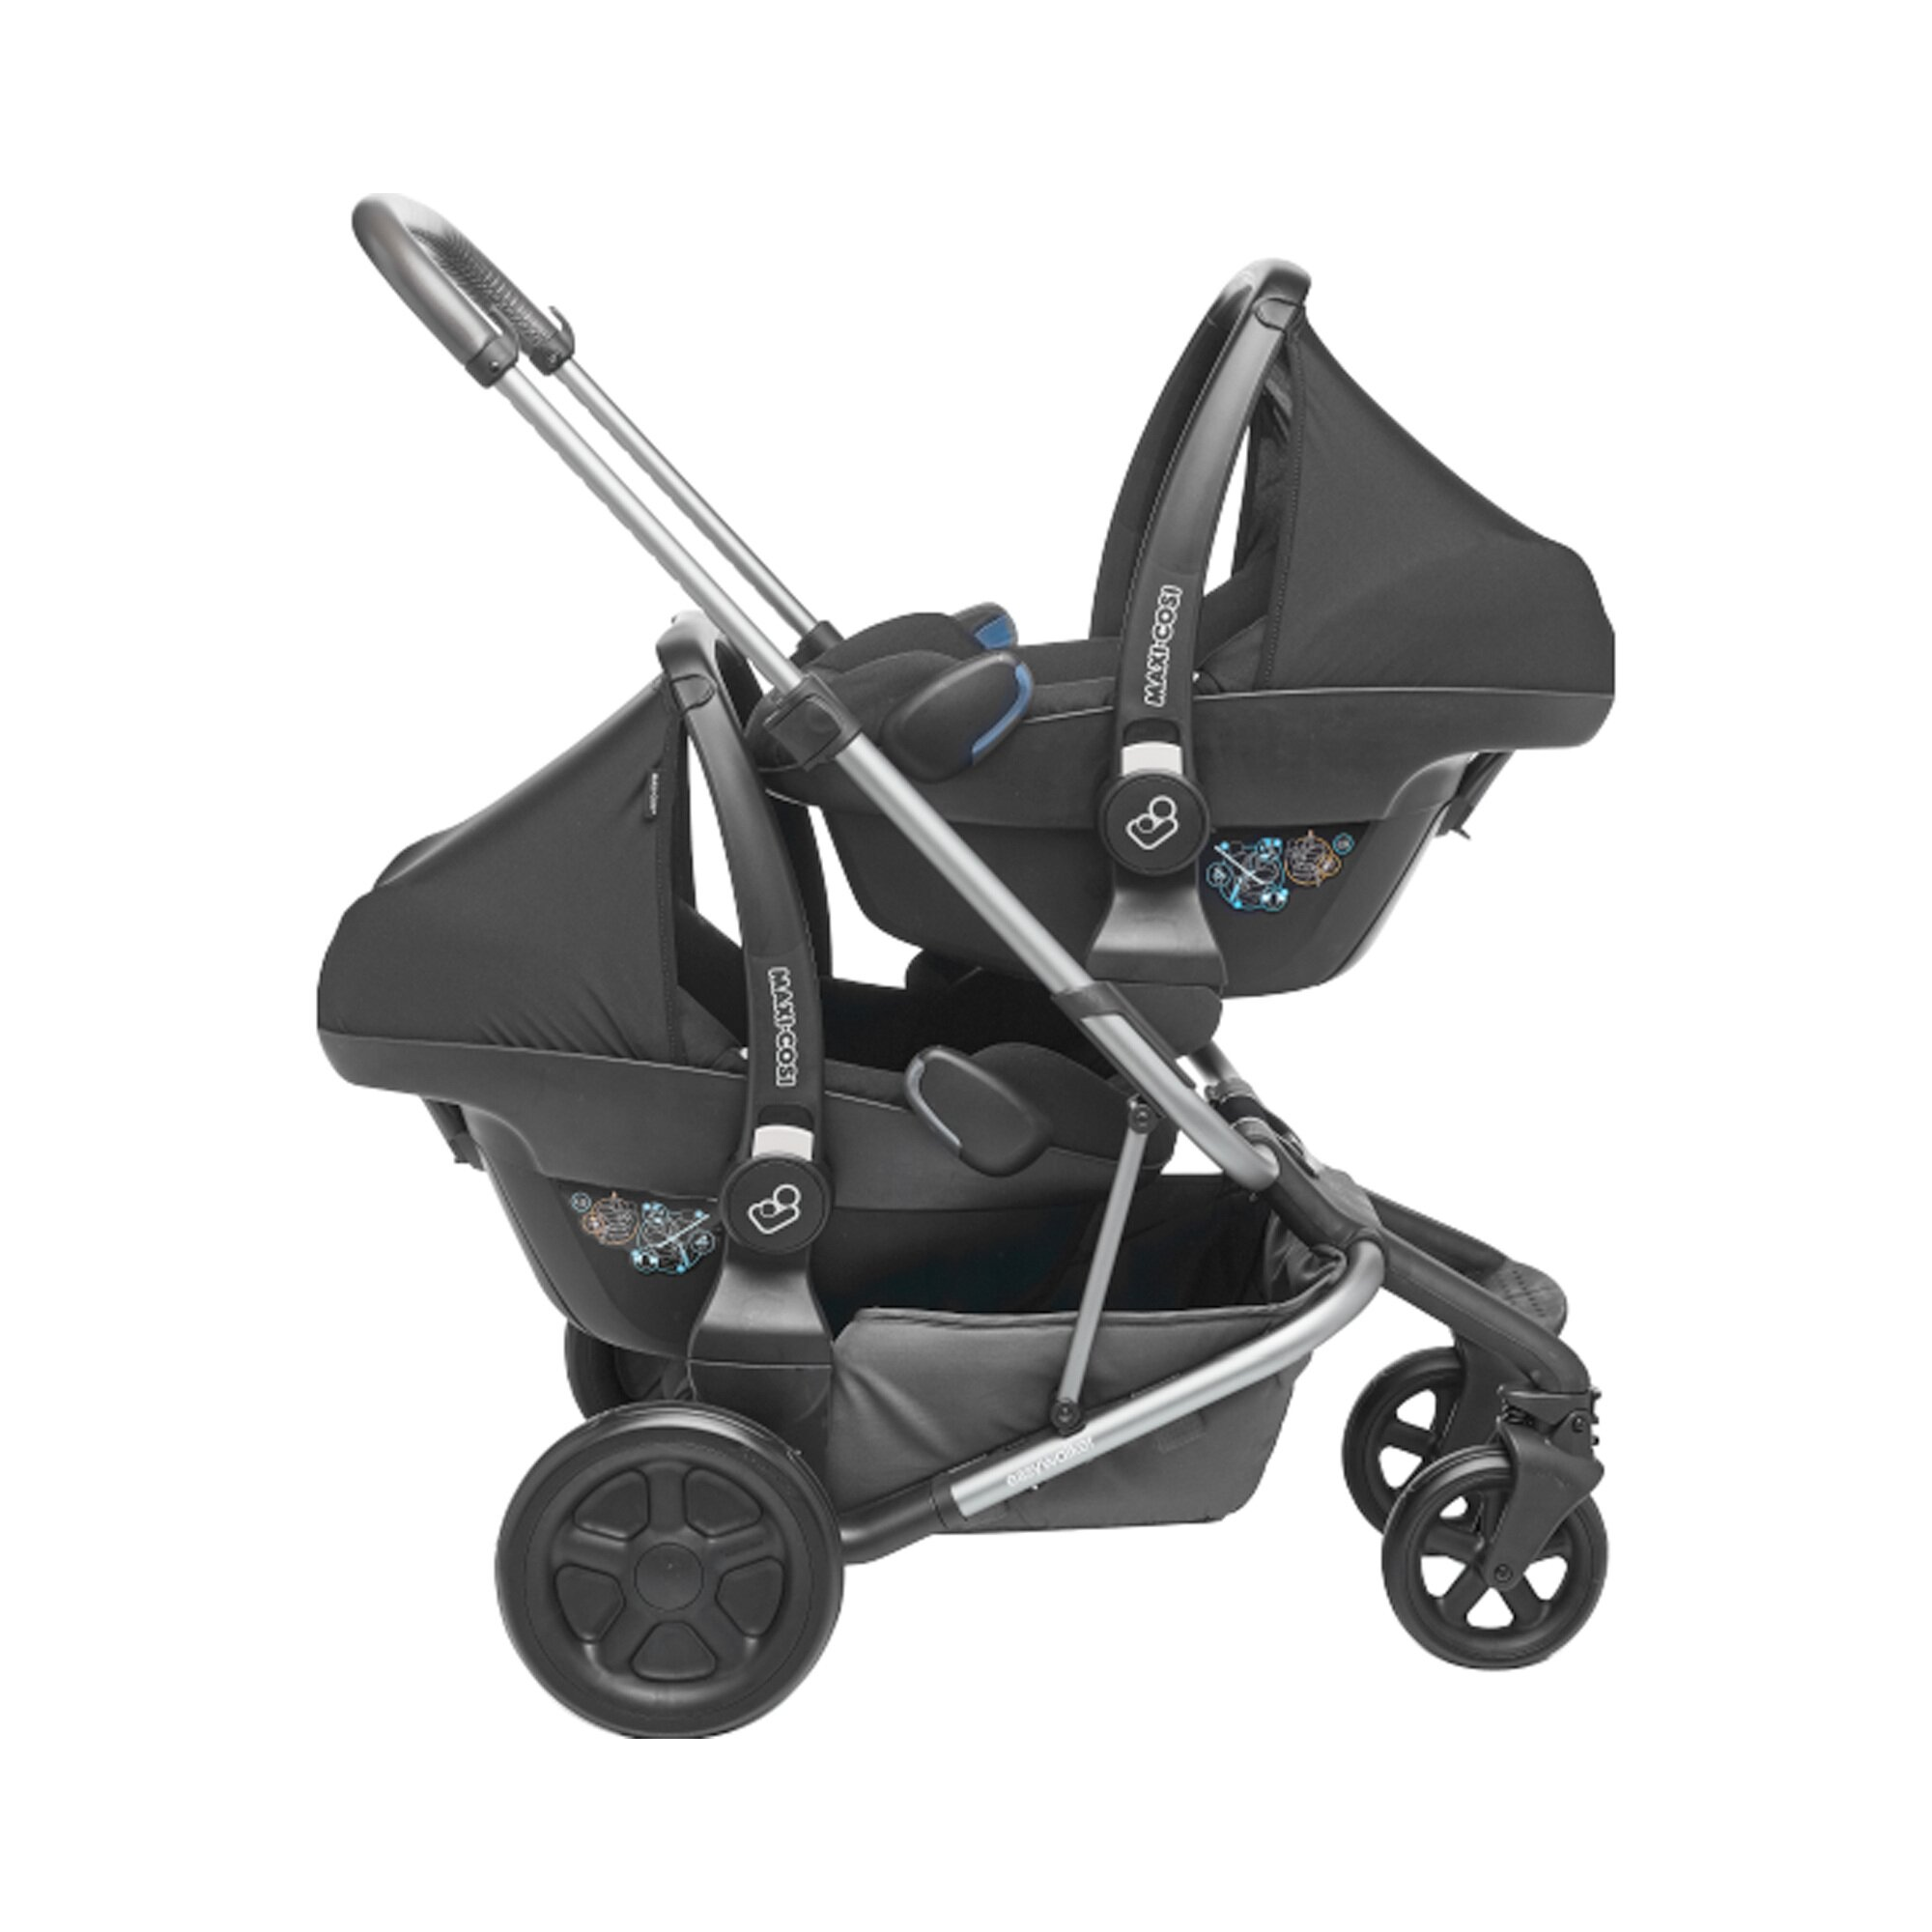 harvey-adapter-fur-maxi-cosi-cybex-nuna-und-kiddy